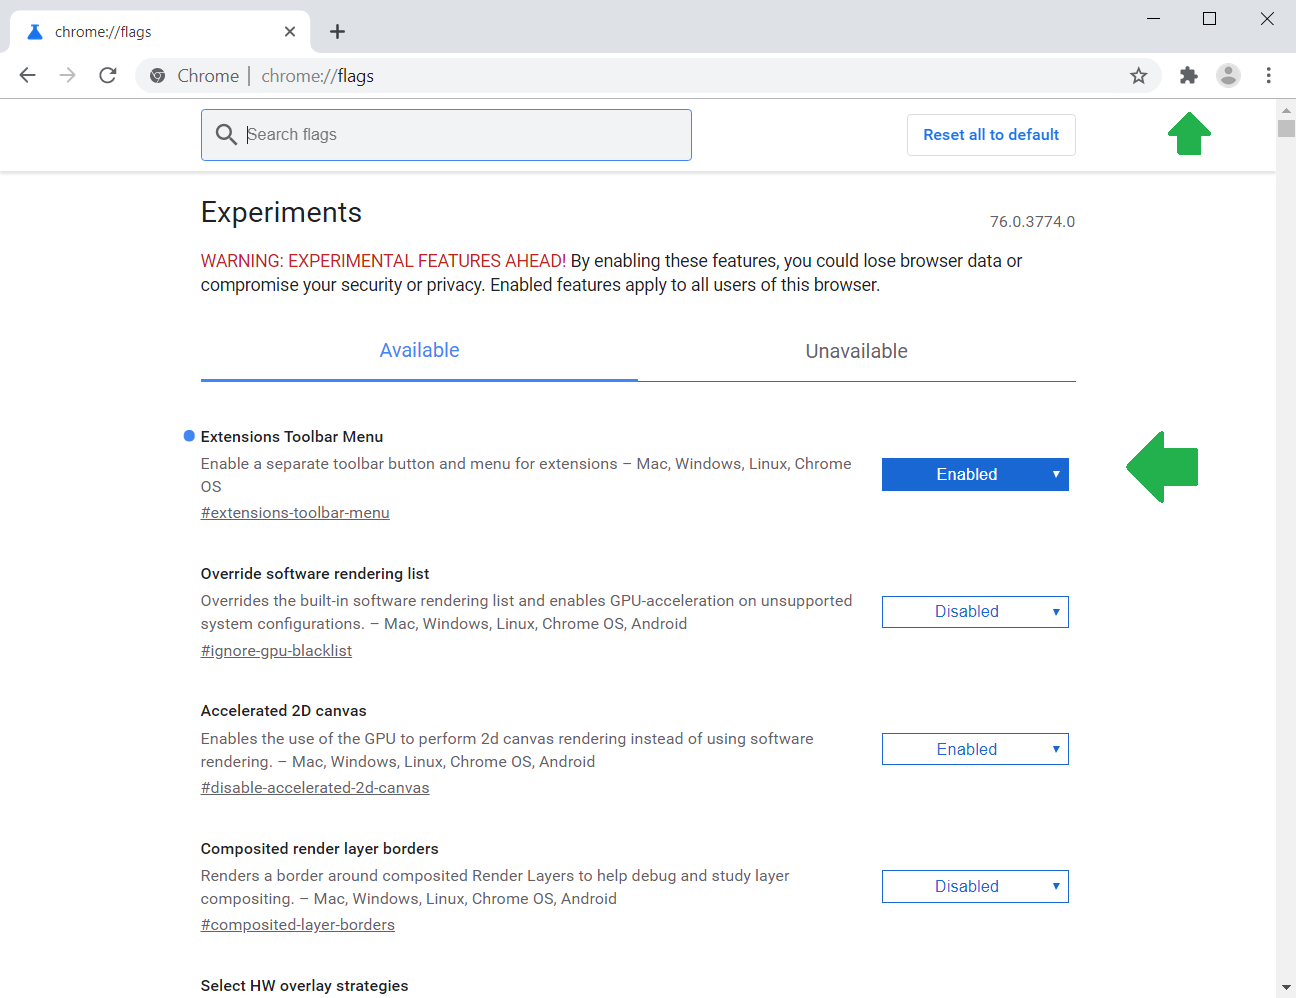 Google Chrome is experimenting with a New Extension Menu